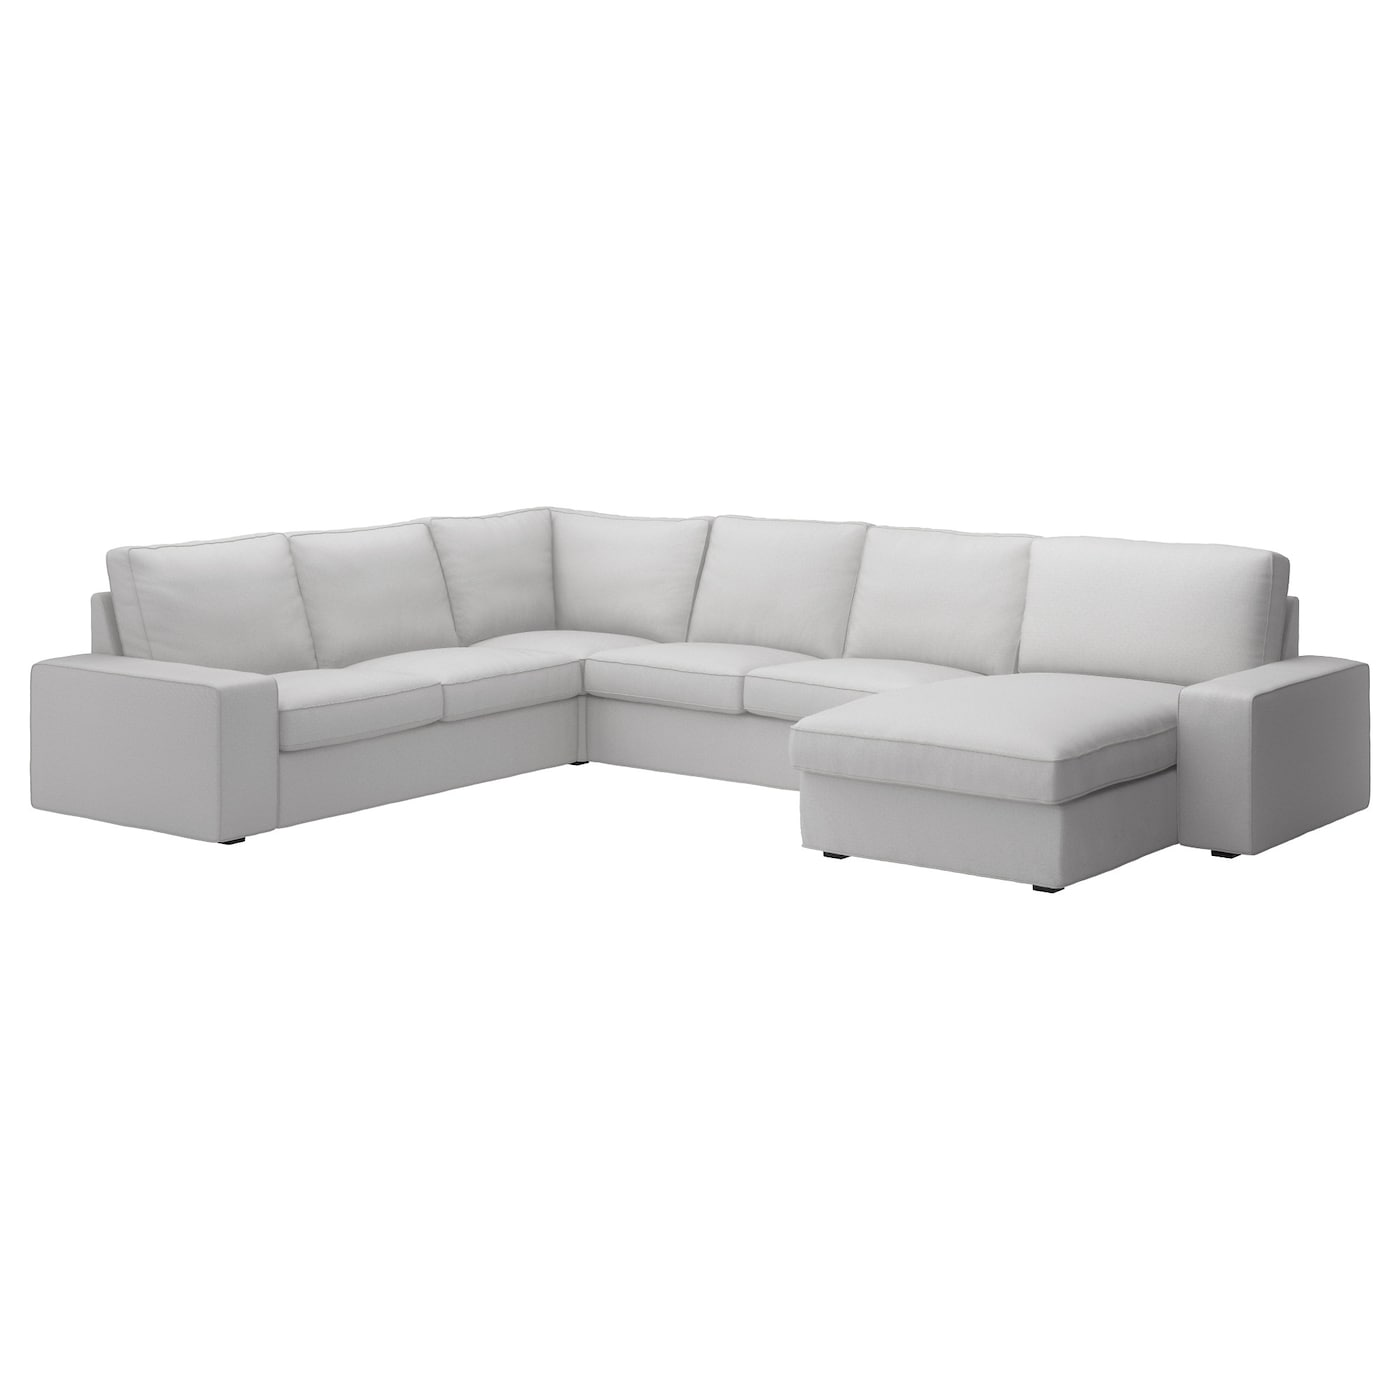 Kivik corner sofa 2 2 with chaise longue ramna light grey for Sofas con shenlong